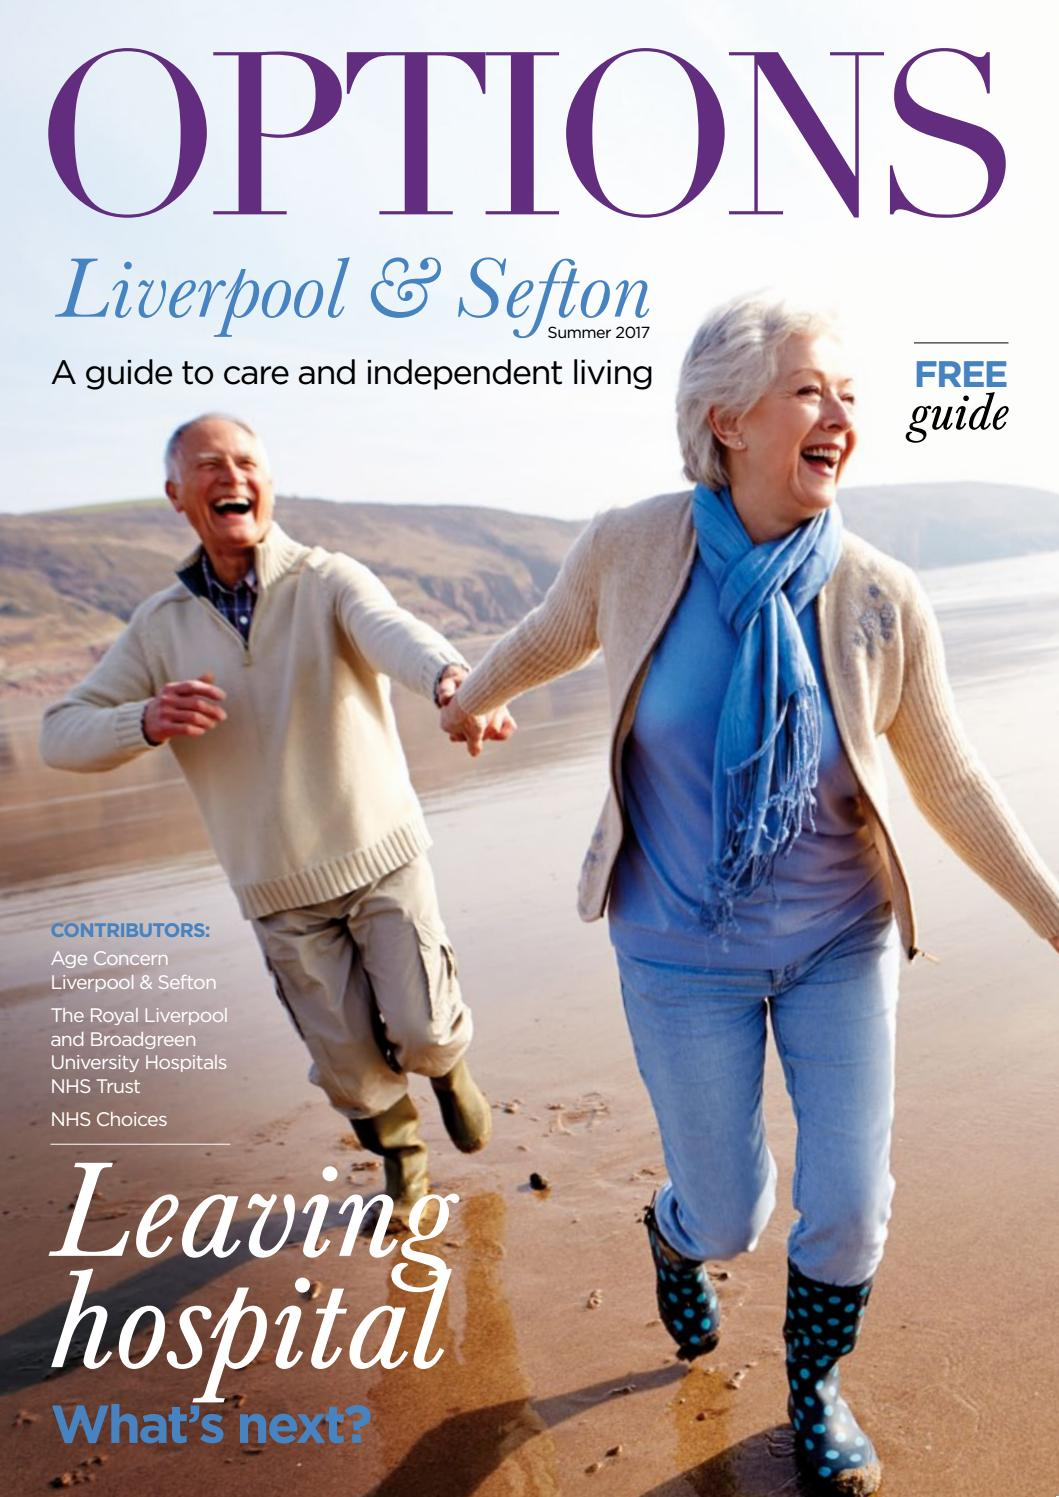 Options Liverpool & Sefton - A guide to care and independent living -  Summer 2017